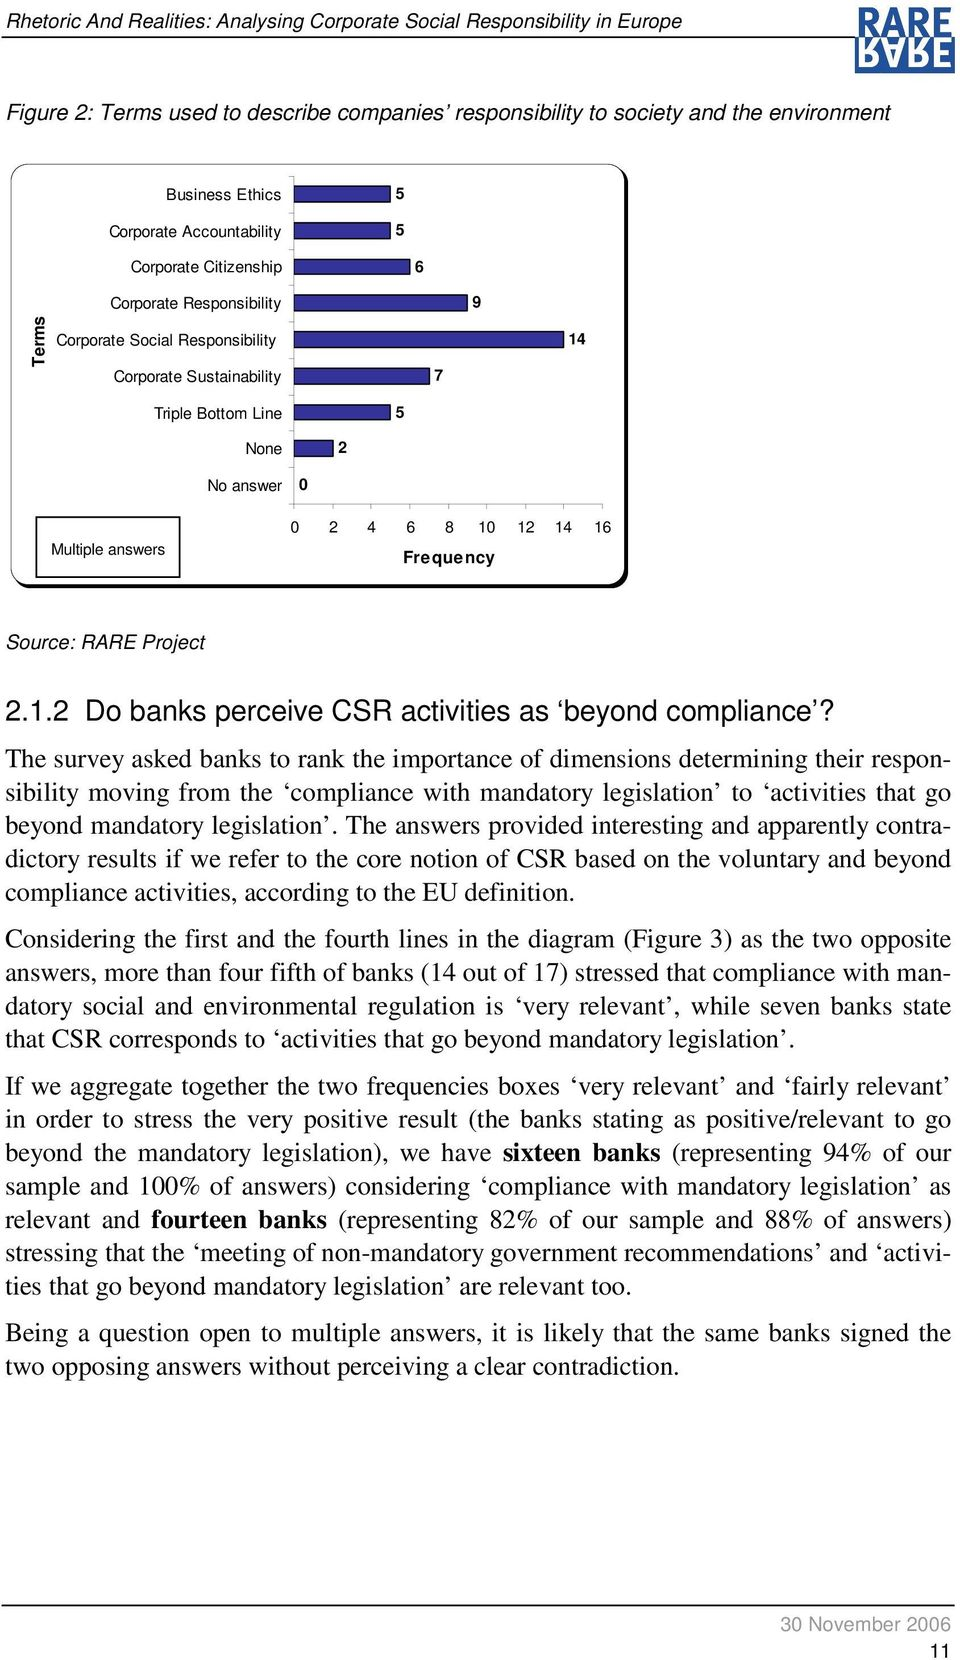 .2 Do banks perceive CSR activities as beyond compliance?